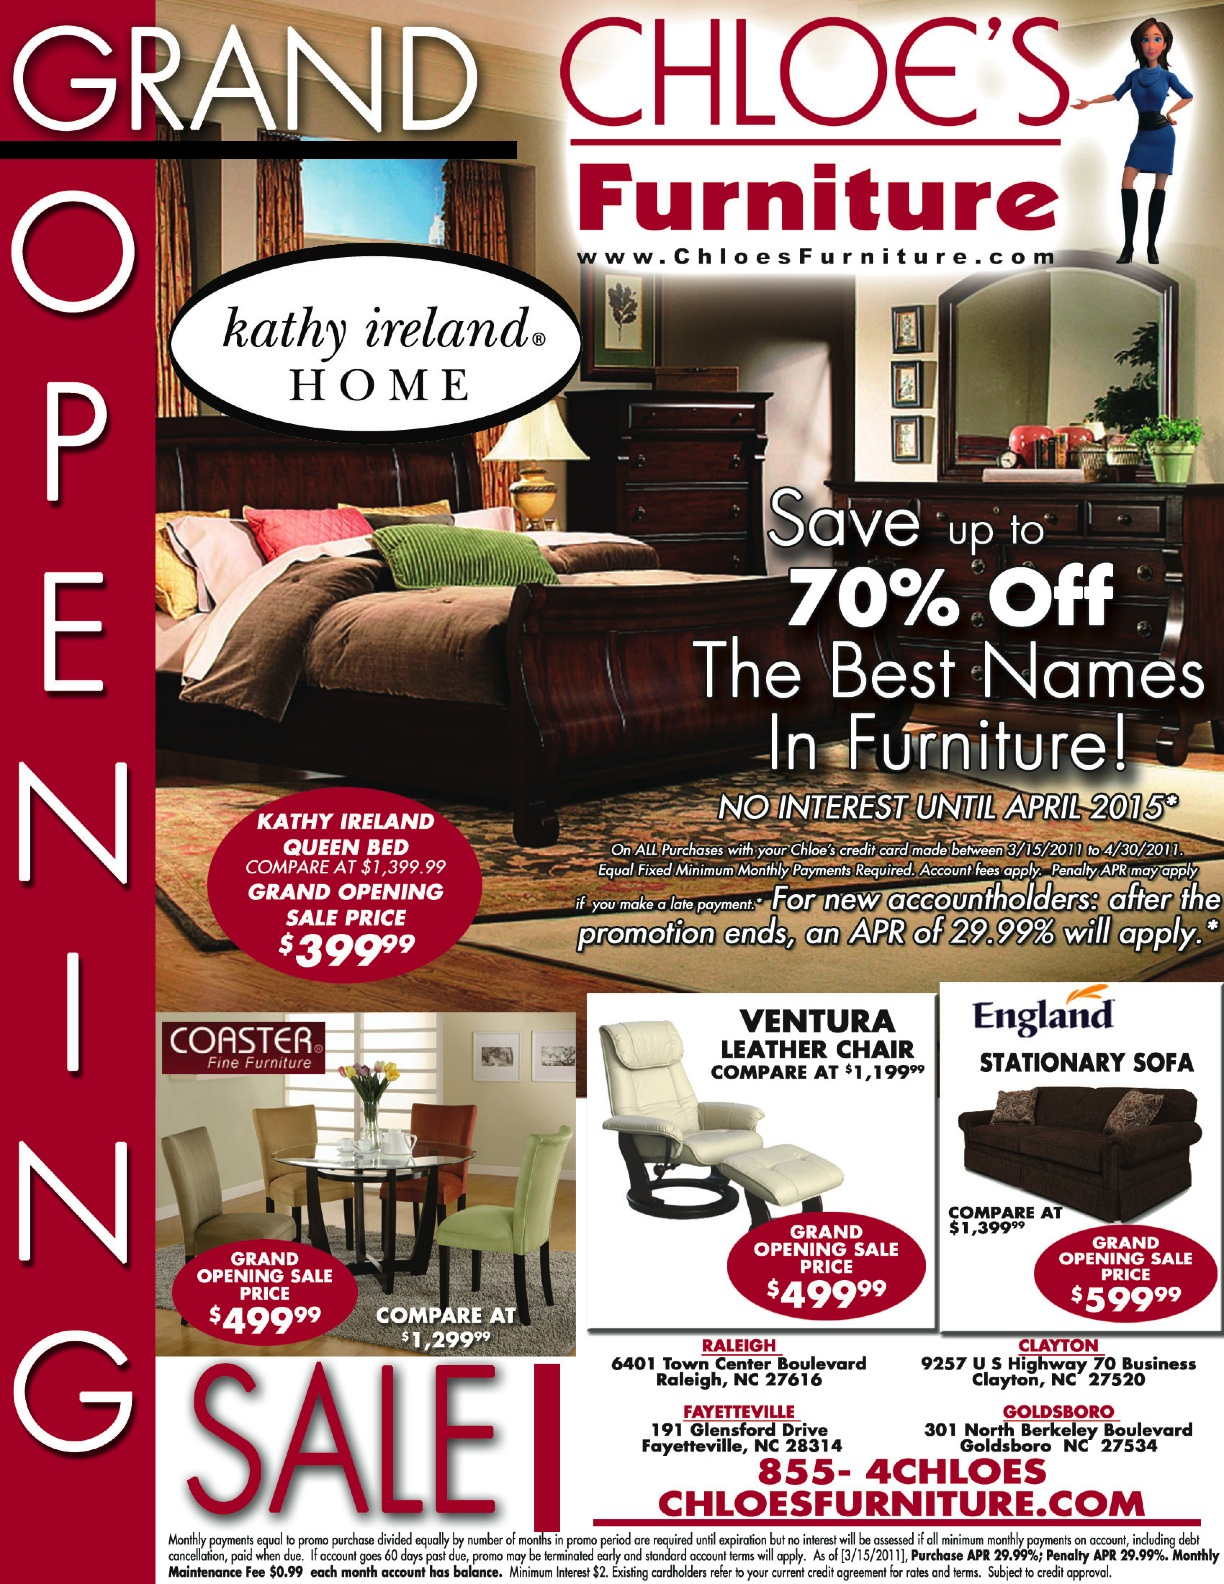 399 Furniture Store Chloe S Furniture When Furnishing Your Home Chloe Can Help